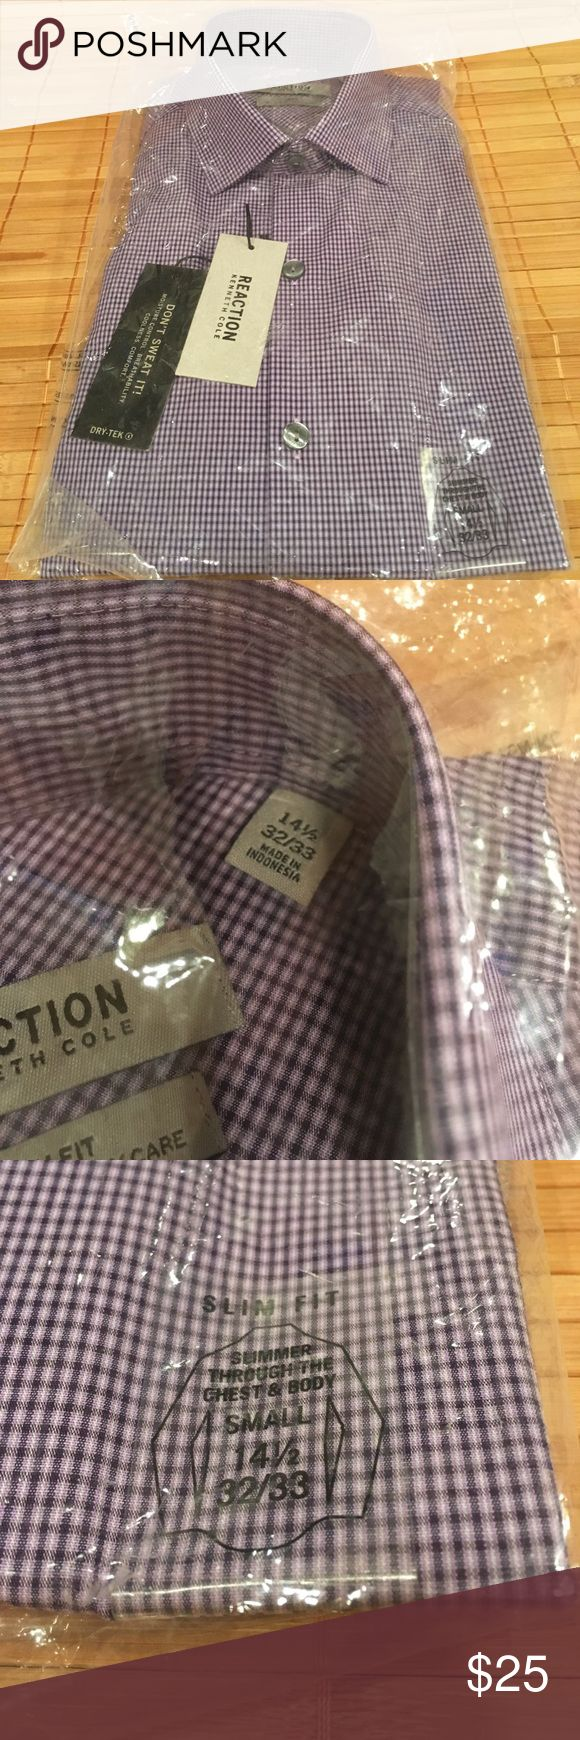 """Kenneth Cole Reaction Men's Shirt- NWT size 14.5 Kenneth Cole Reaction Men's long sleeved shirt in ORIGINAL PACKAGING WITH ALL TAGS. On-trend print and colors. It's a """"slim fit"""" and tag reads """"slimmer through chest and body"""". dry Tek fabric means """"better moisture control, breathability and comfort"""". The """"easy care"""" fabric is great for a college guy or bachelor- no ironing! My son wears these year round. Roll up sleeves for casual look or wear with a tie. Color is """"Bright Violet"""". Size is…"""